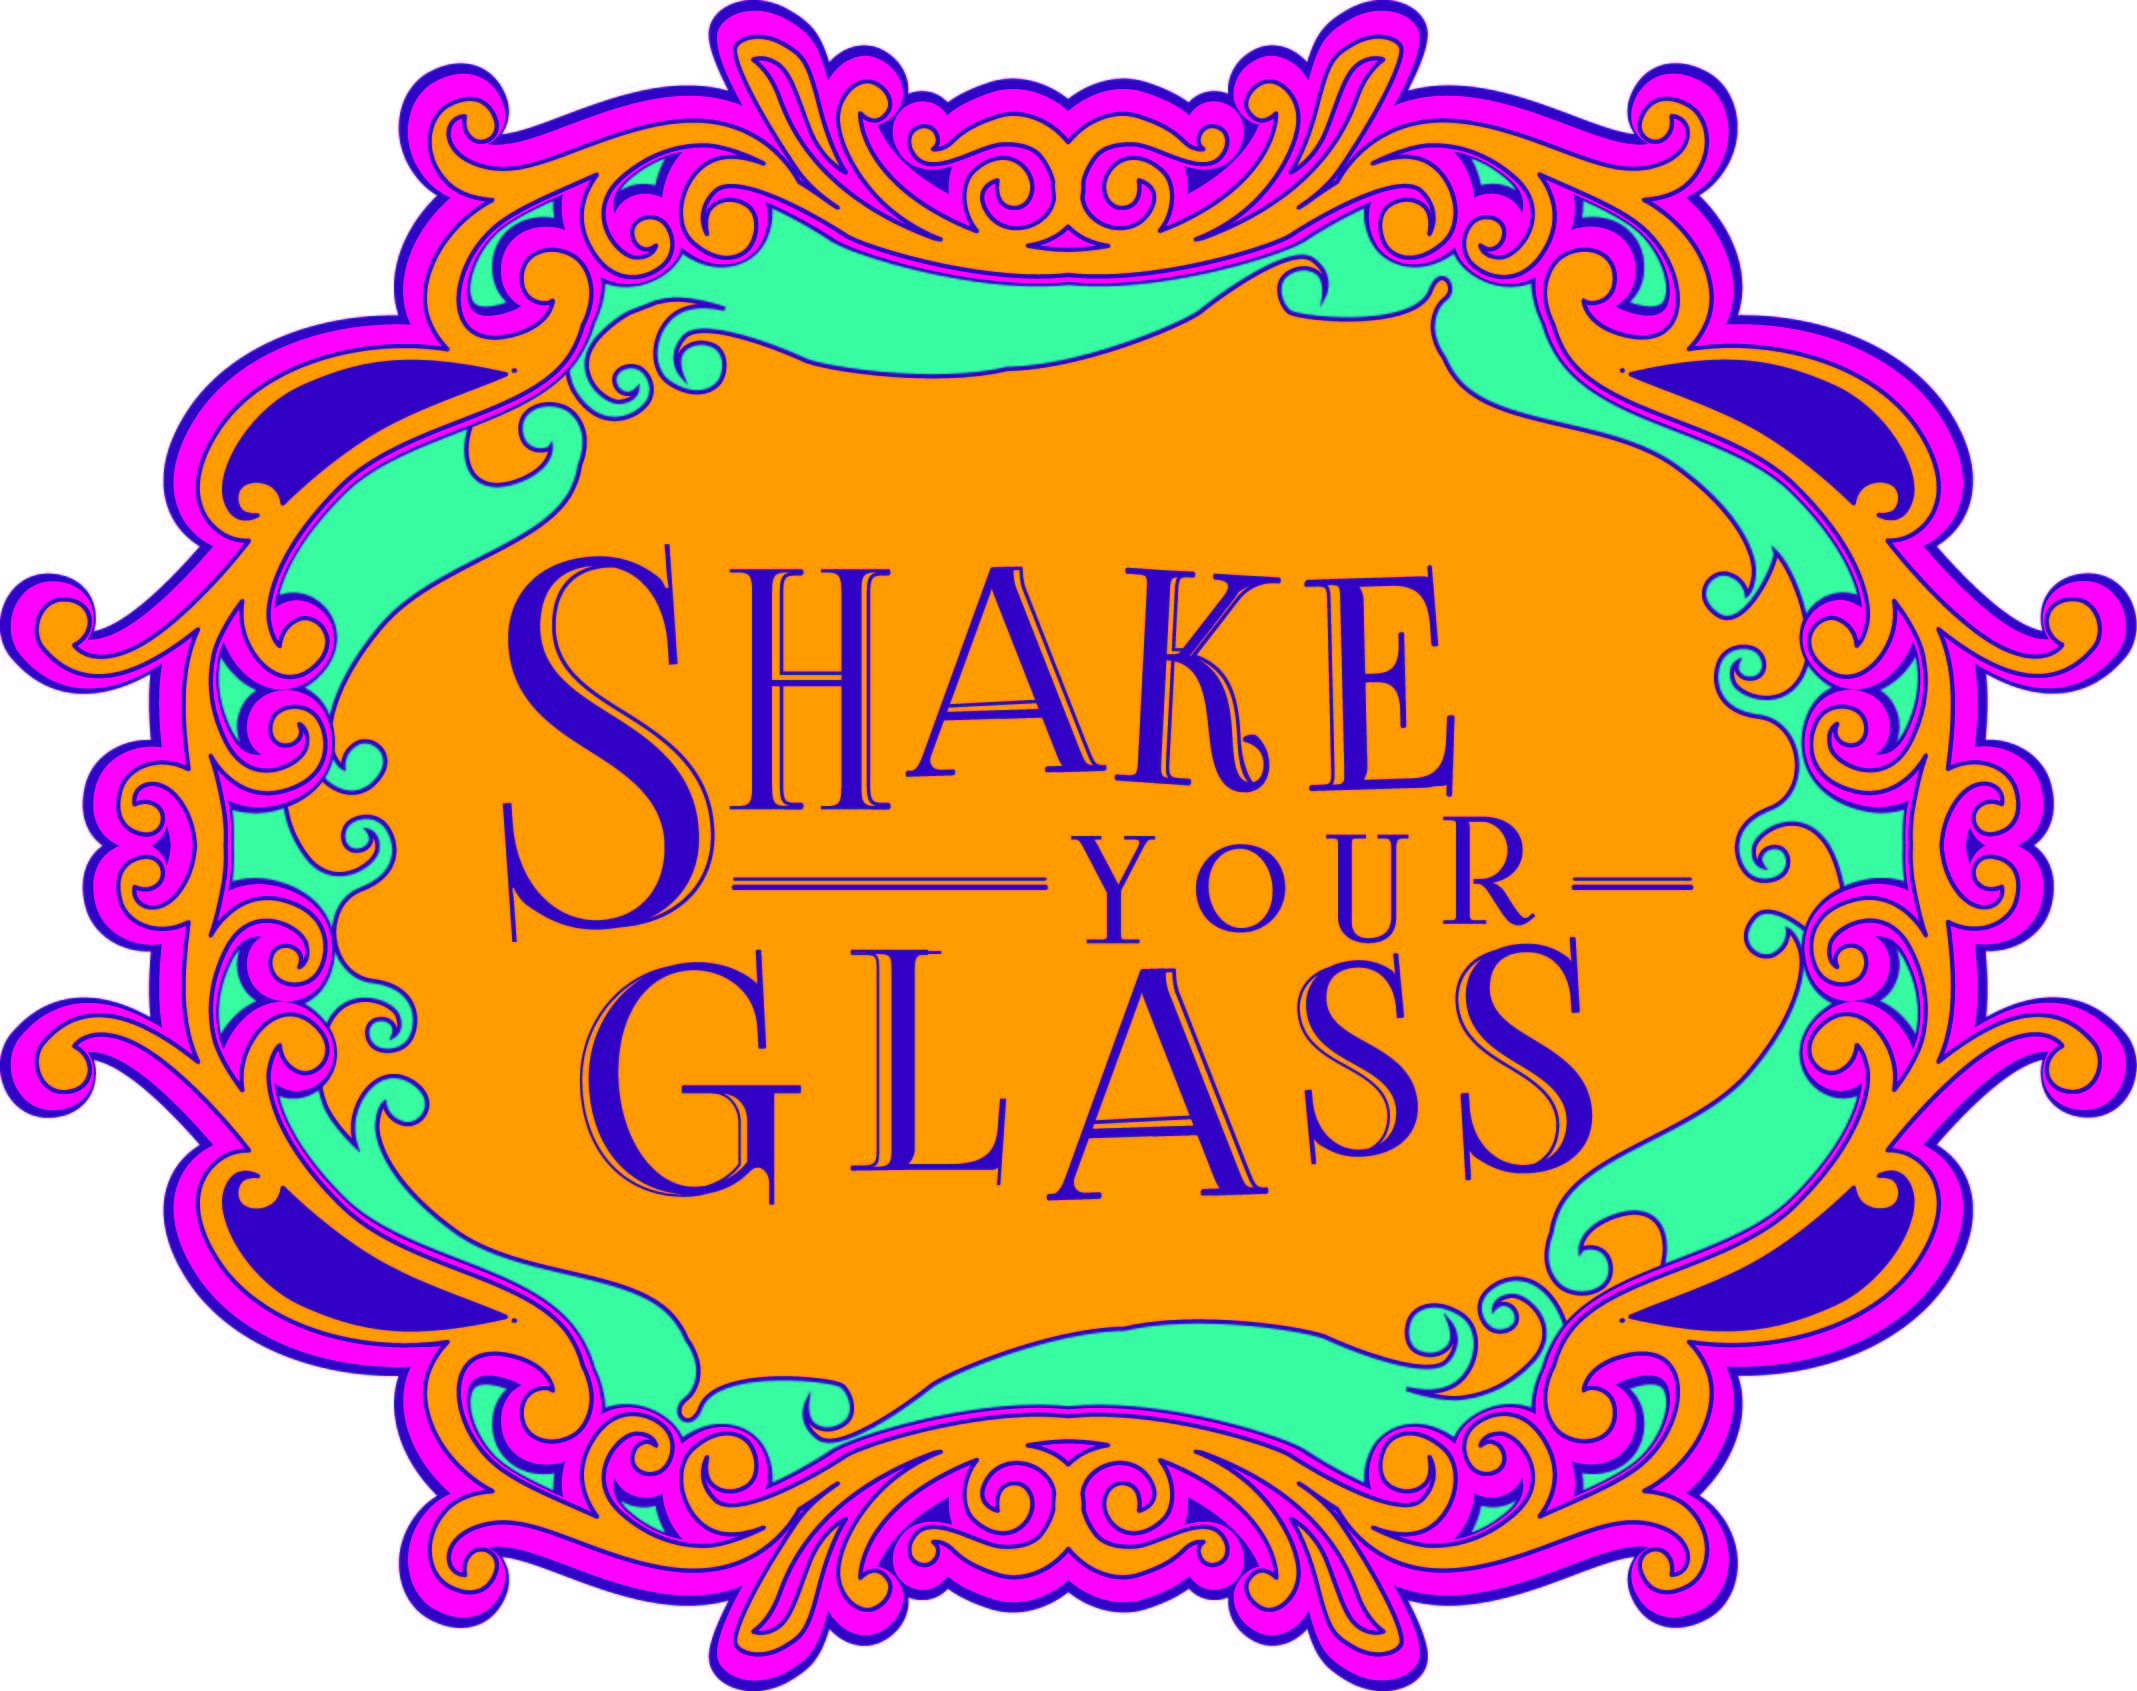 Shake Your Glass Logo